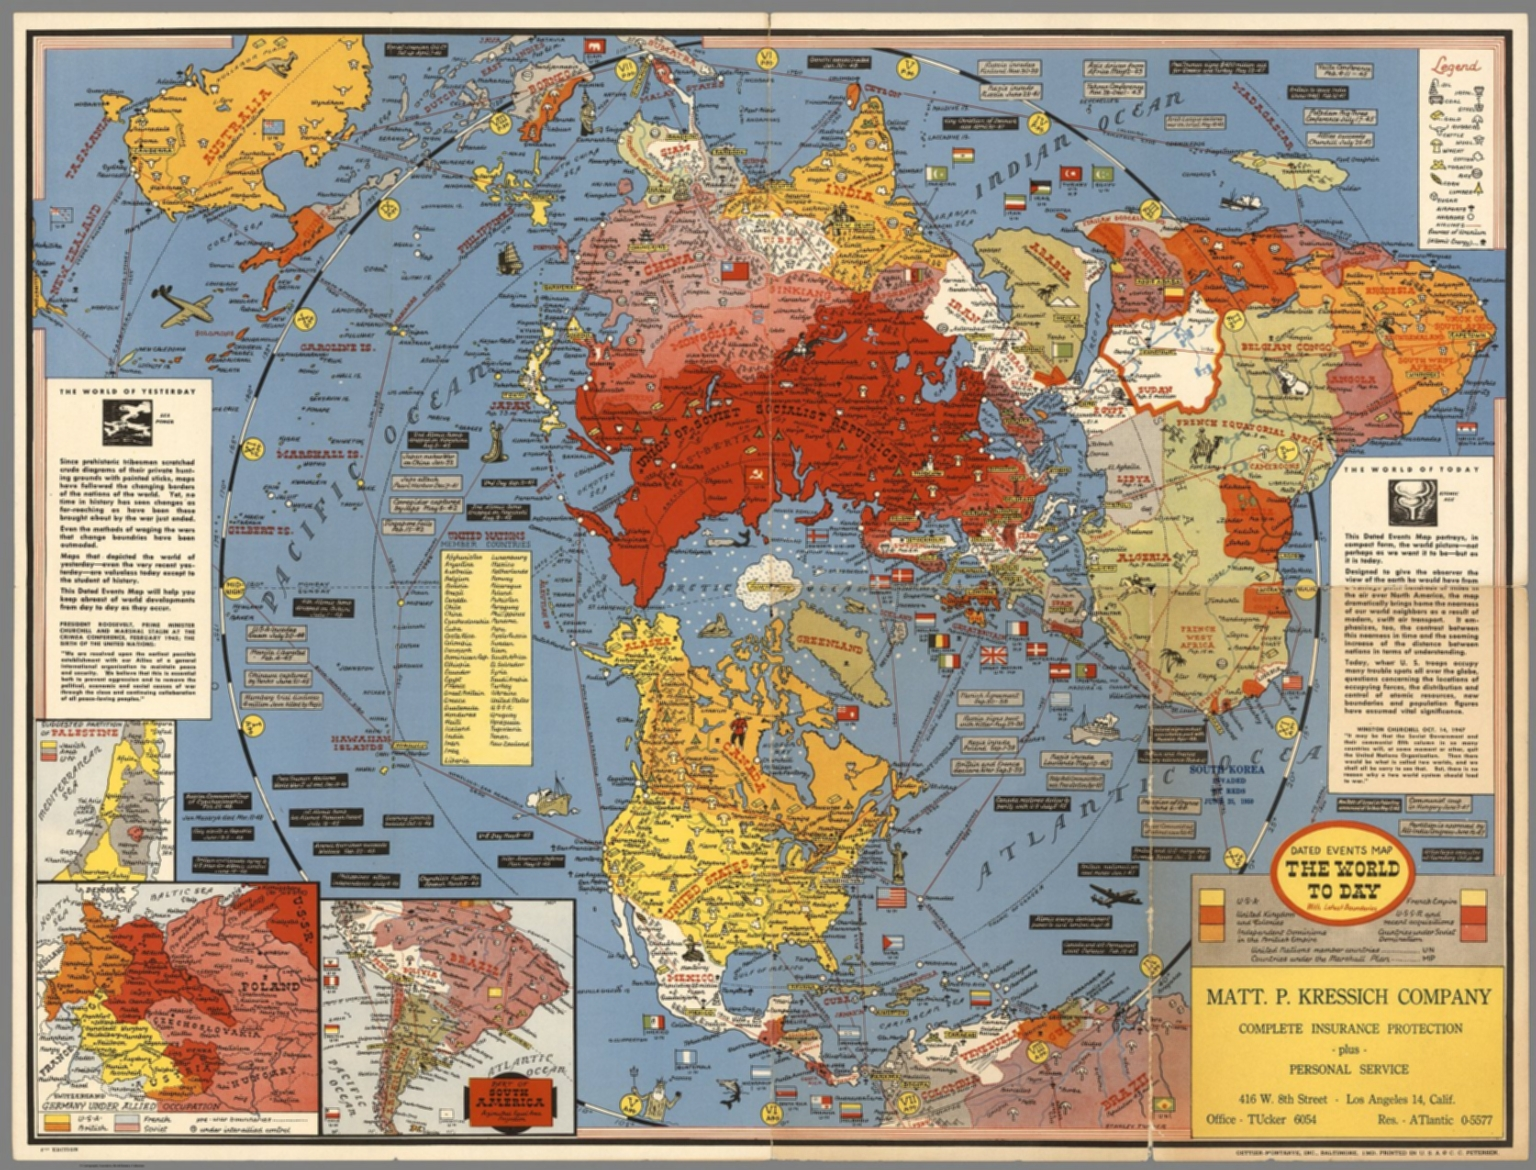 1948 World Map.Dated Events Map The World Today With Latest Boundaries 1948